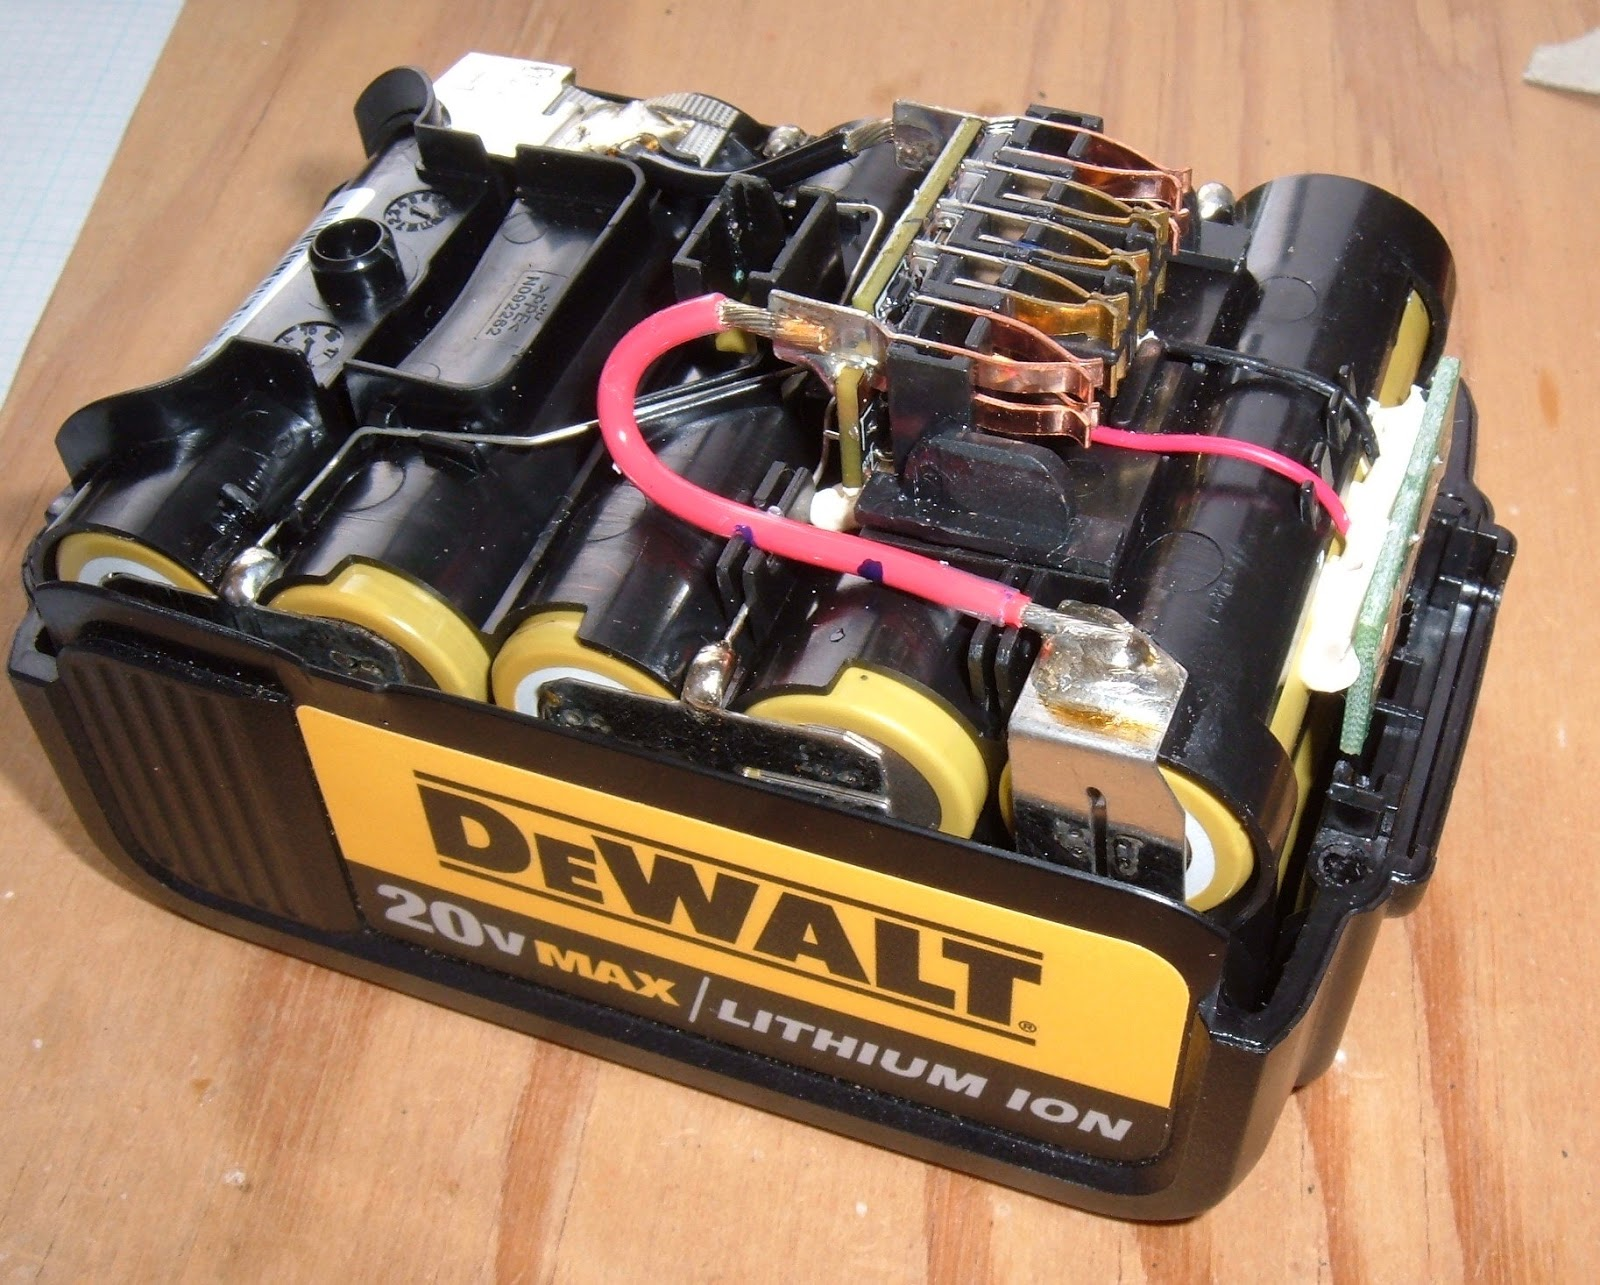 Syonyks Project Blog Dewalt 20v Max 30ah Battery Pack Teardown The Kill Switch Be Hooked Up Positive Or Negative To After A Bit More Prying Is Out There Are 10 Cells 2p5s And Theyre Held Together With Rather Substantial Interconnect Strips